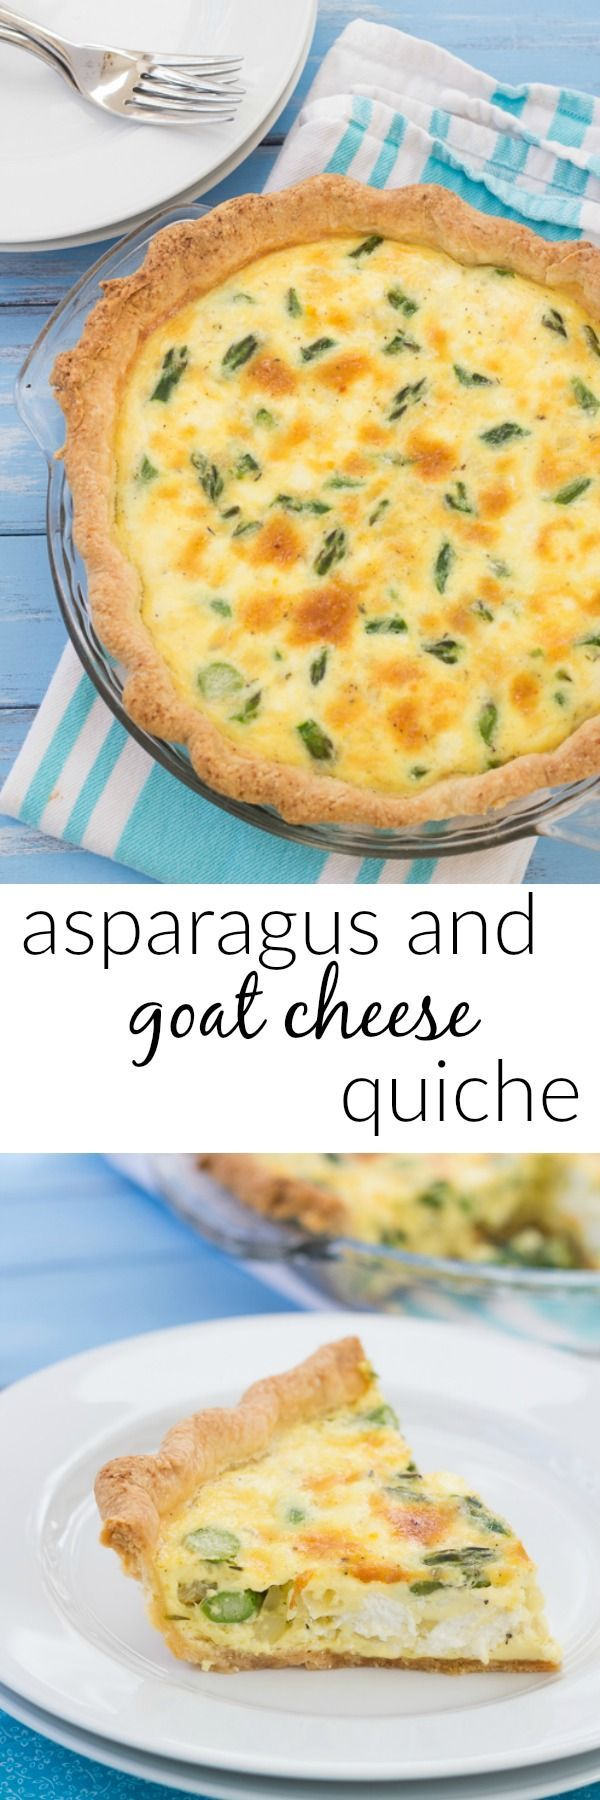 Easy recipe for Asparagus Quiche with Goat Cheese! A delicious vegetarian entree for breakfast or dinner!